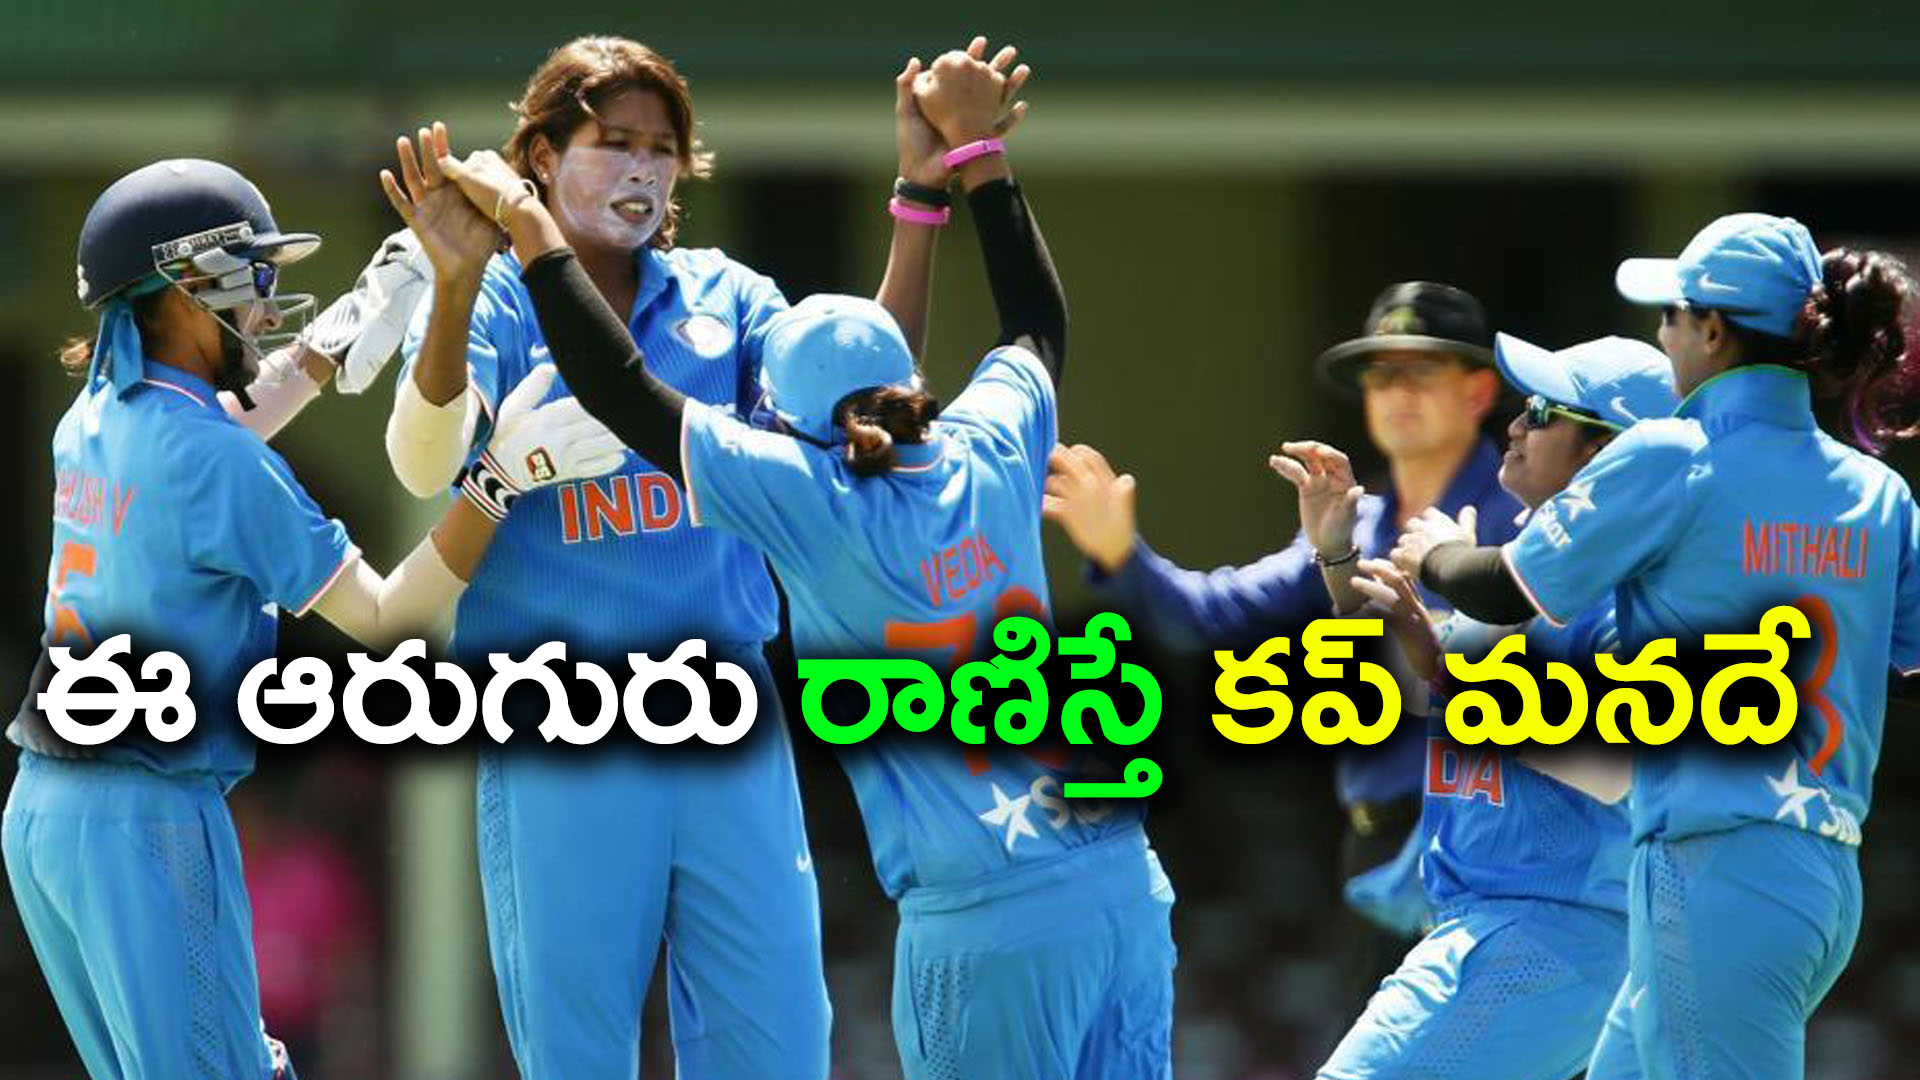 ICC Women's World Cup Final : India aim for their first title against England